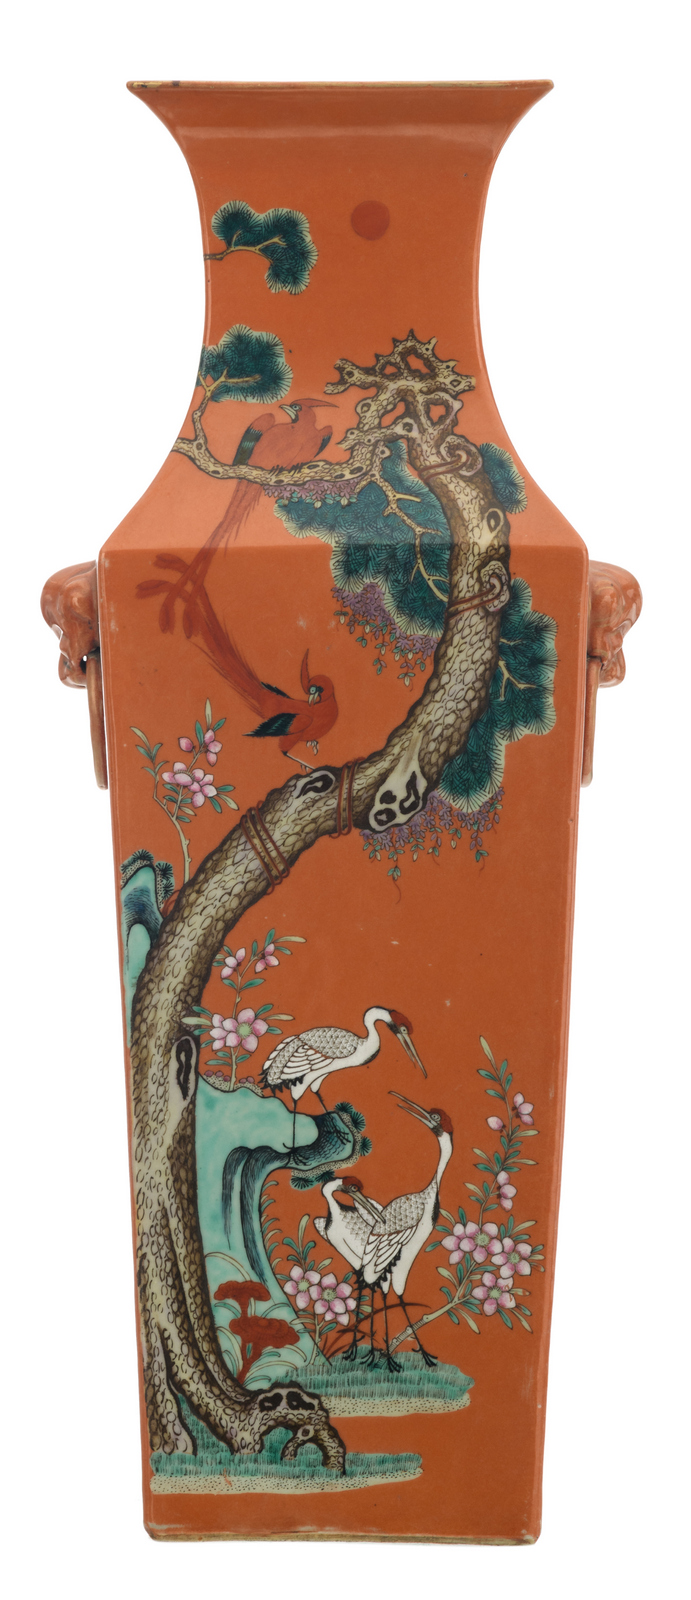 A fine Chinese orange ground famille rose quadrangular vase decorated with birds, rocks and flower branches, about 1900, H 54,5 cm